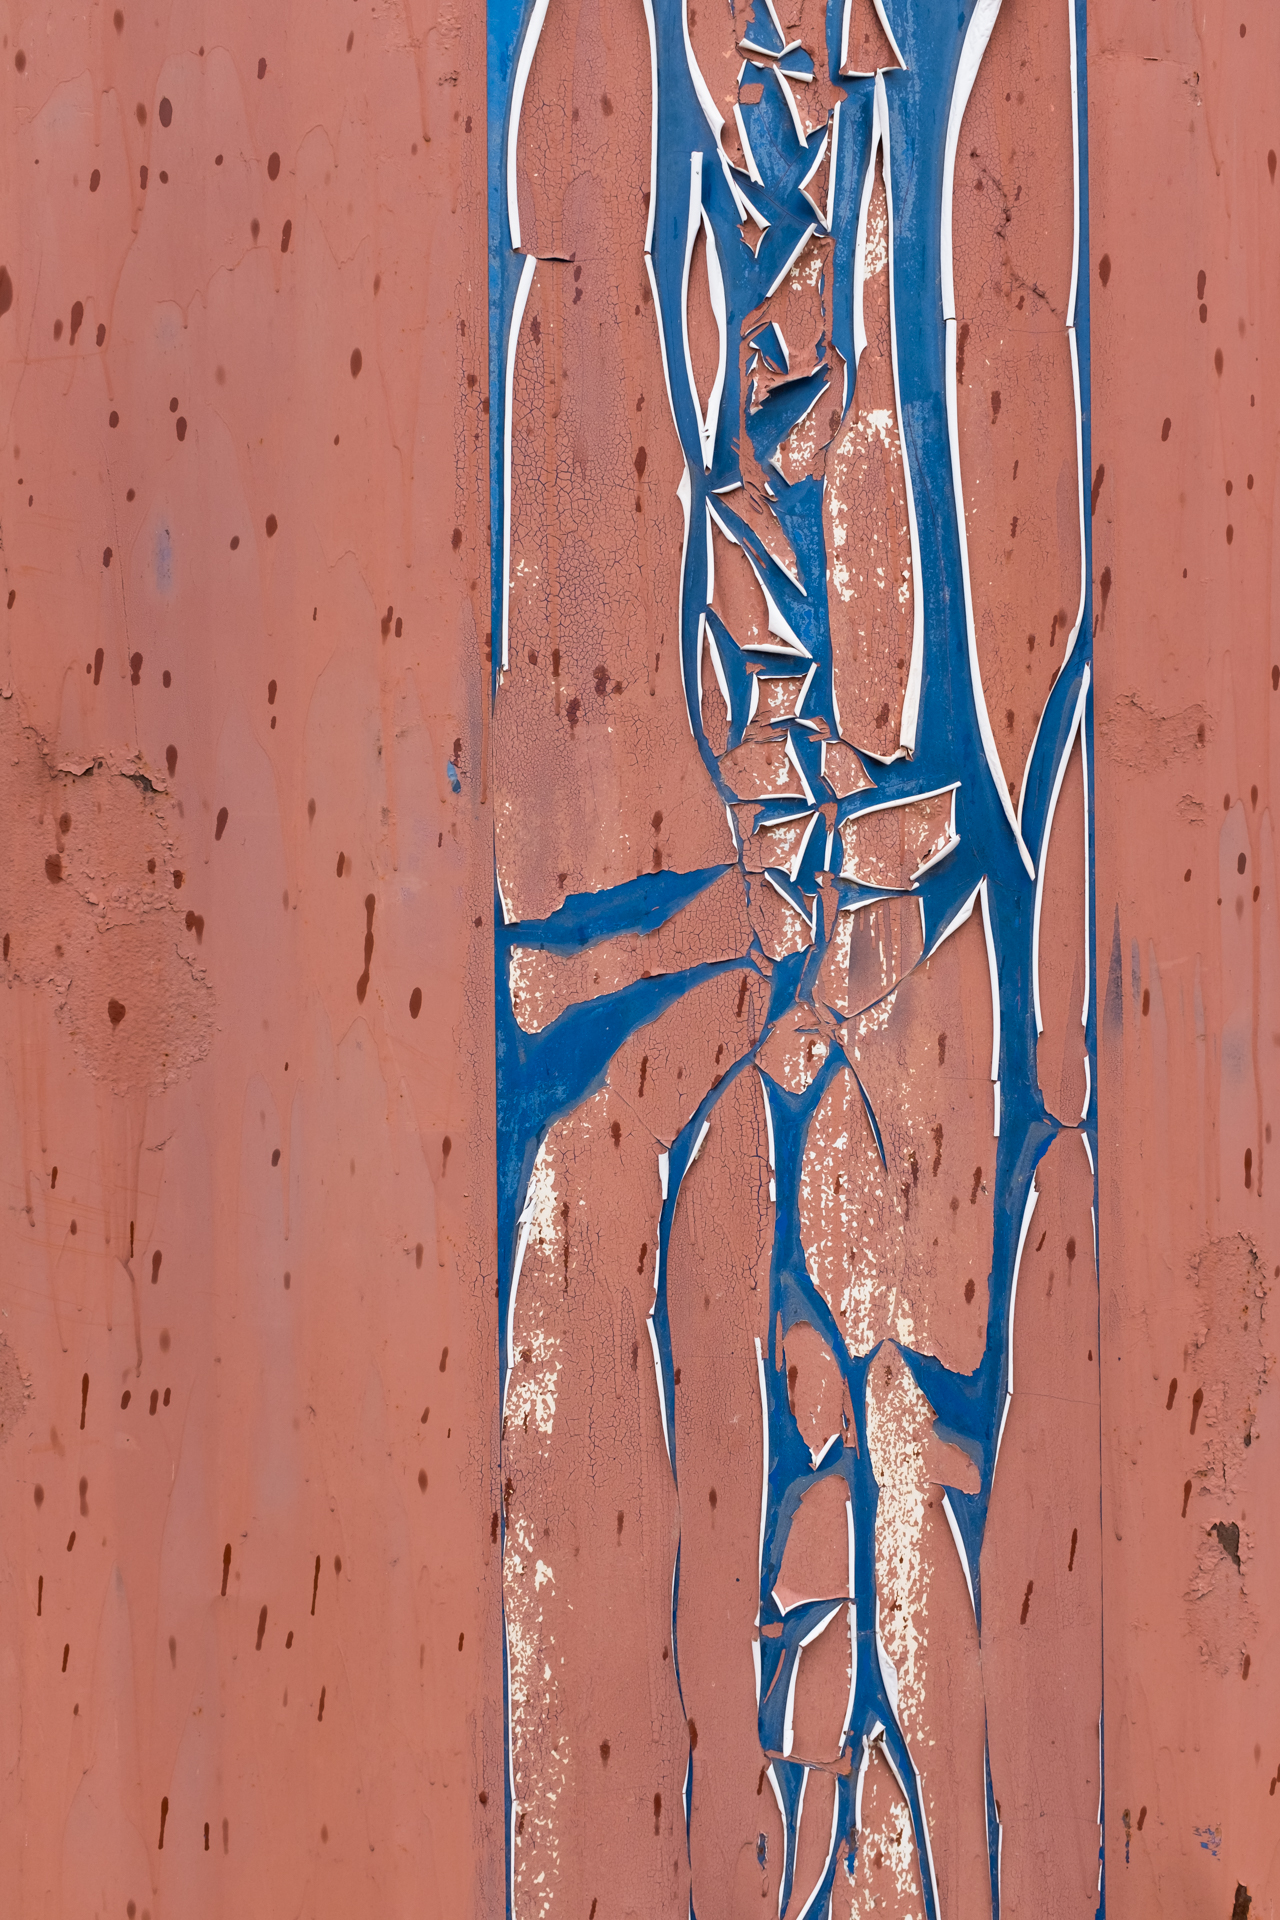 Abstract Ashipping container